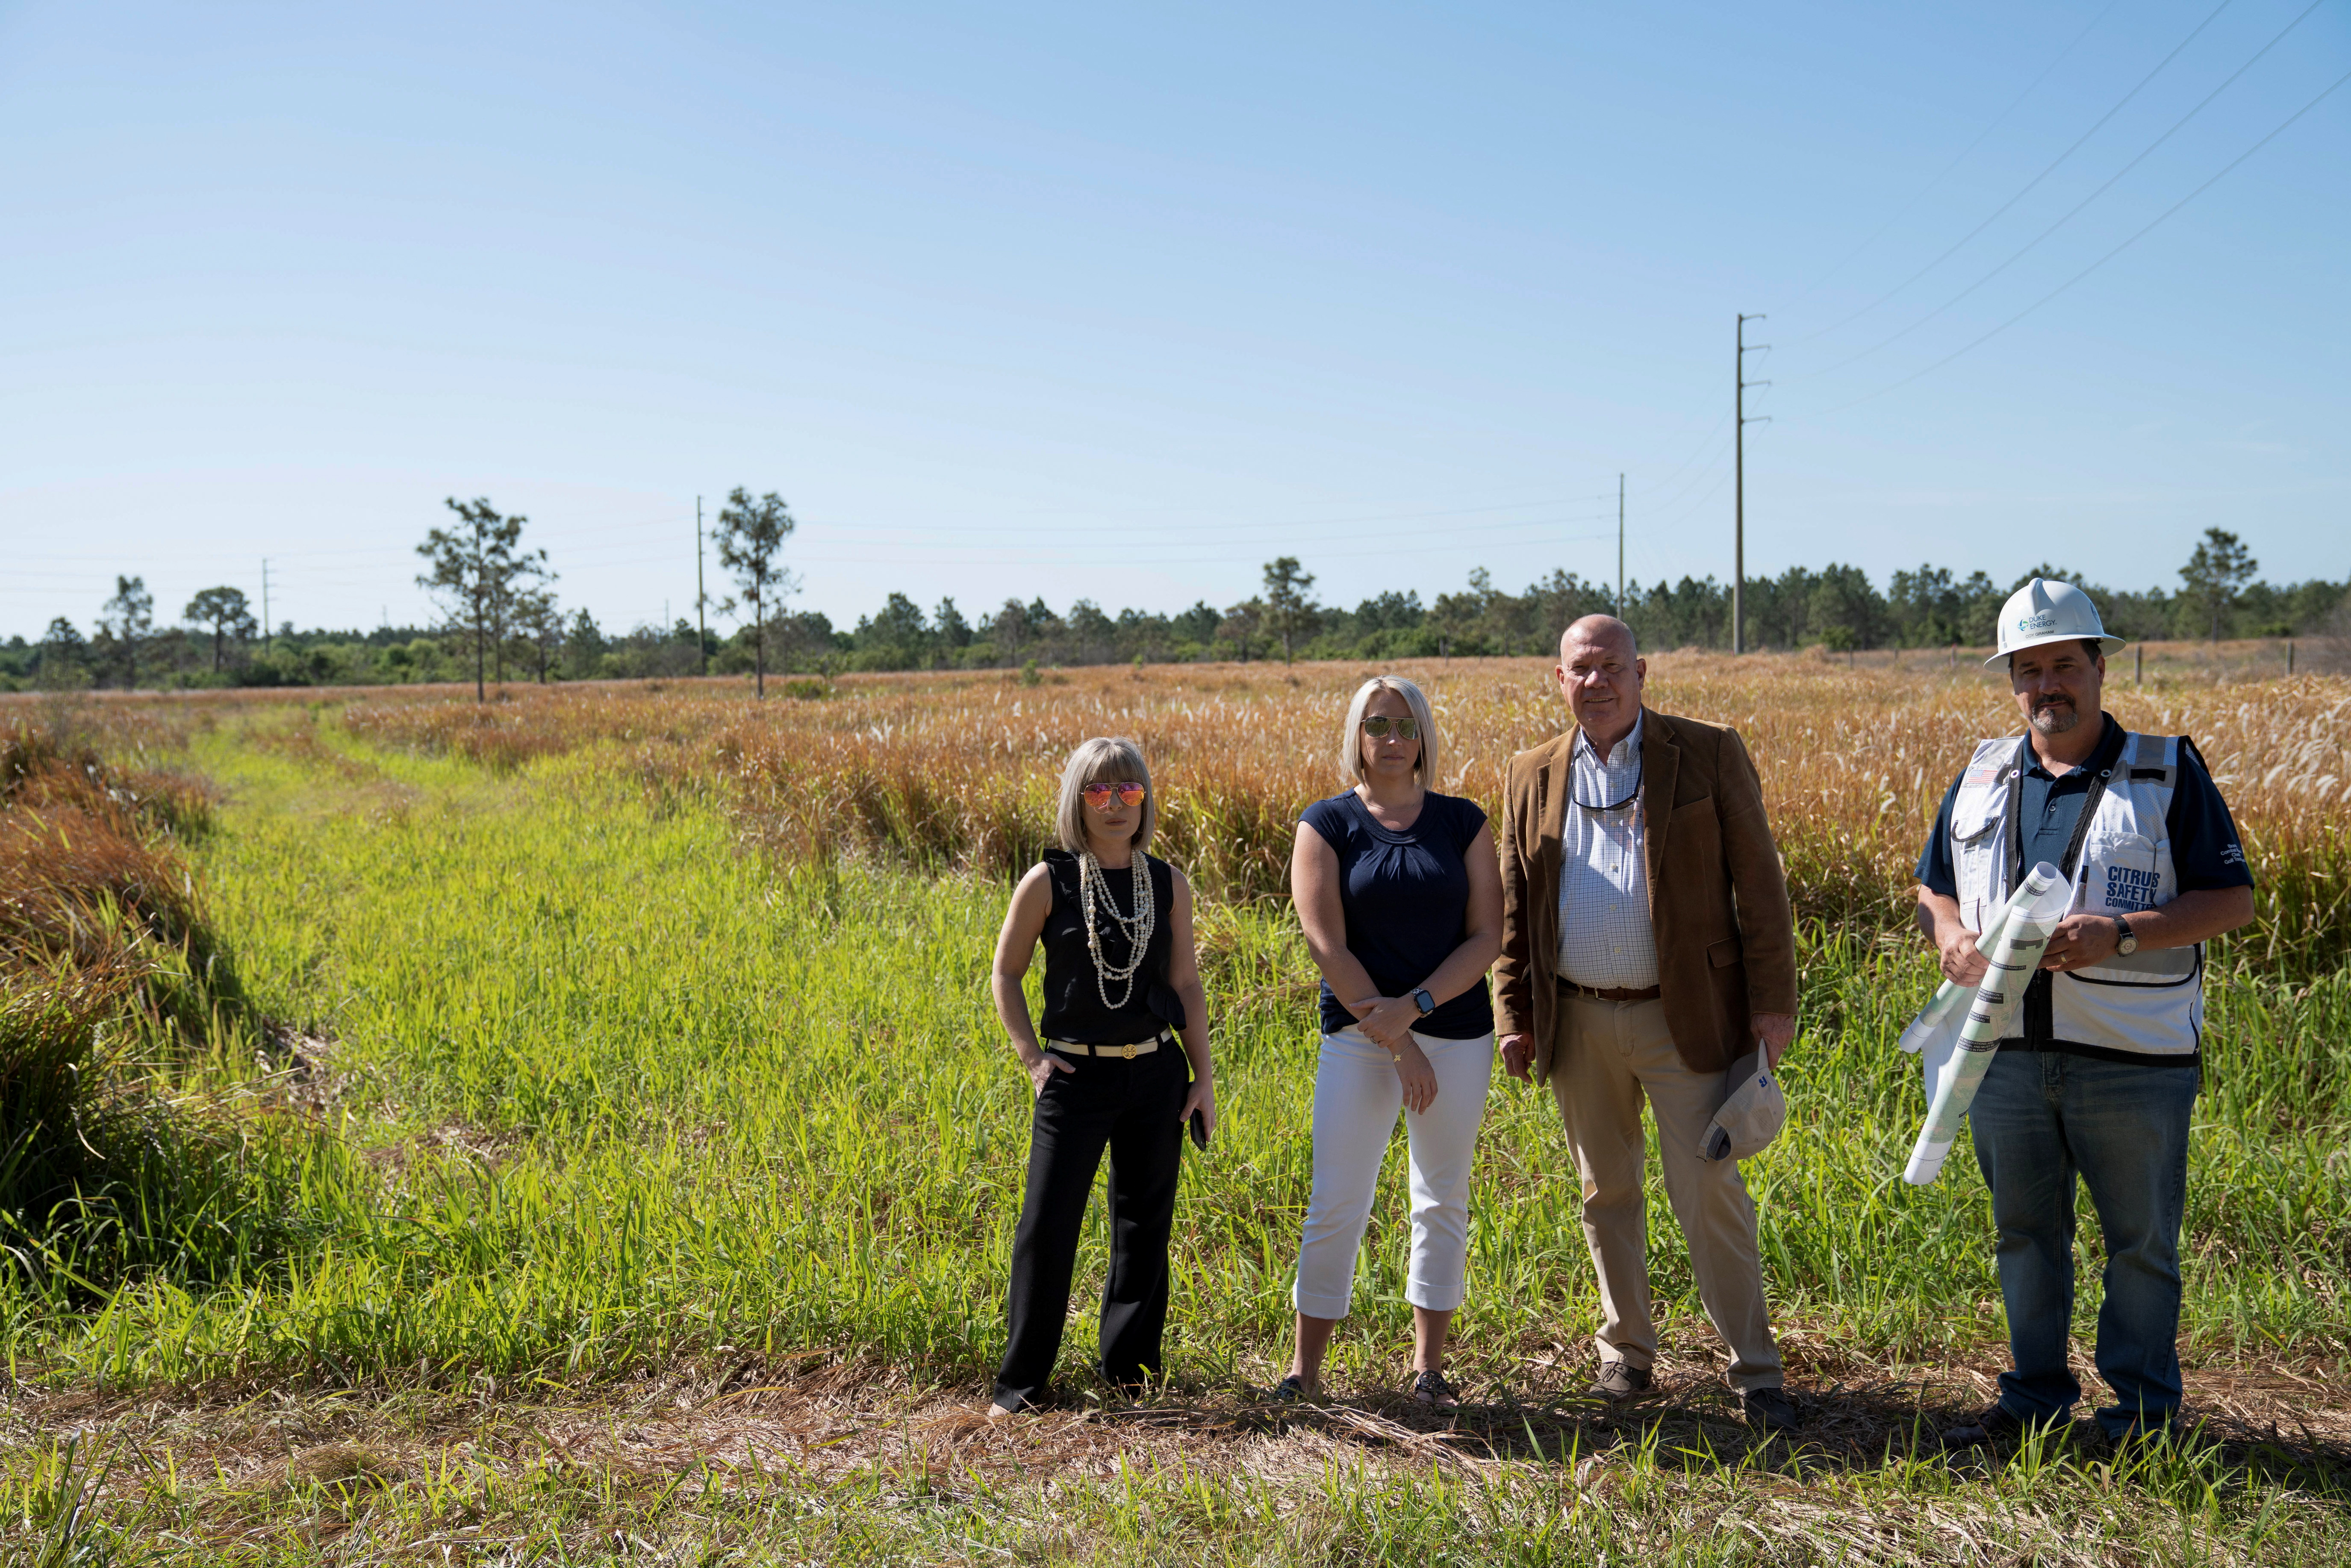 Duke Project Manager Coy Graham, Hardee County Economic Development Director Bill Lambert and team members Sarah Pelham and Kristi Schierling pose for a photo at the Hardee County Solar Development site in Fort Green, Florida, U.S., March 24, 2021.  REUTERS/Dane Rhys